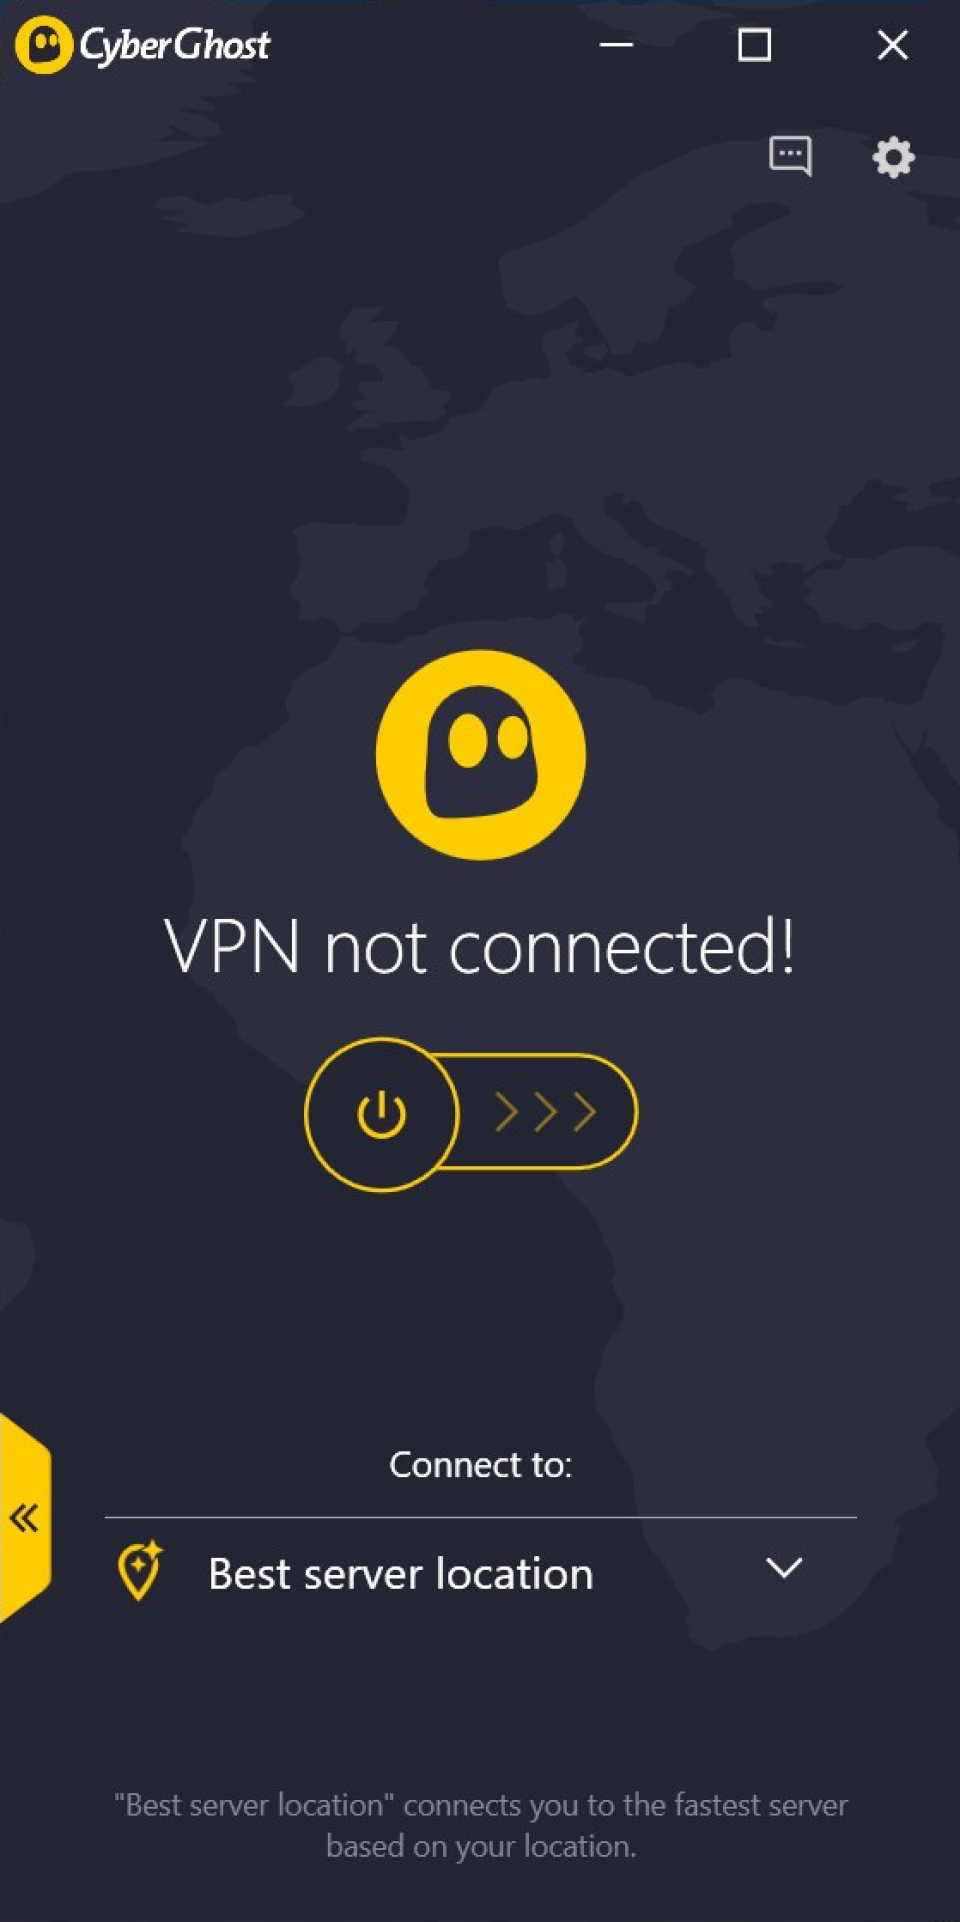 CyberGhost VPN Reviews and Pricing - 2019